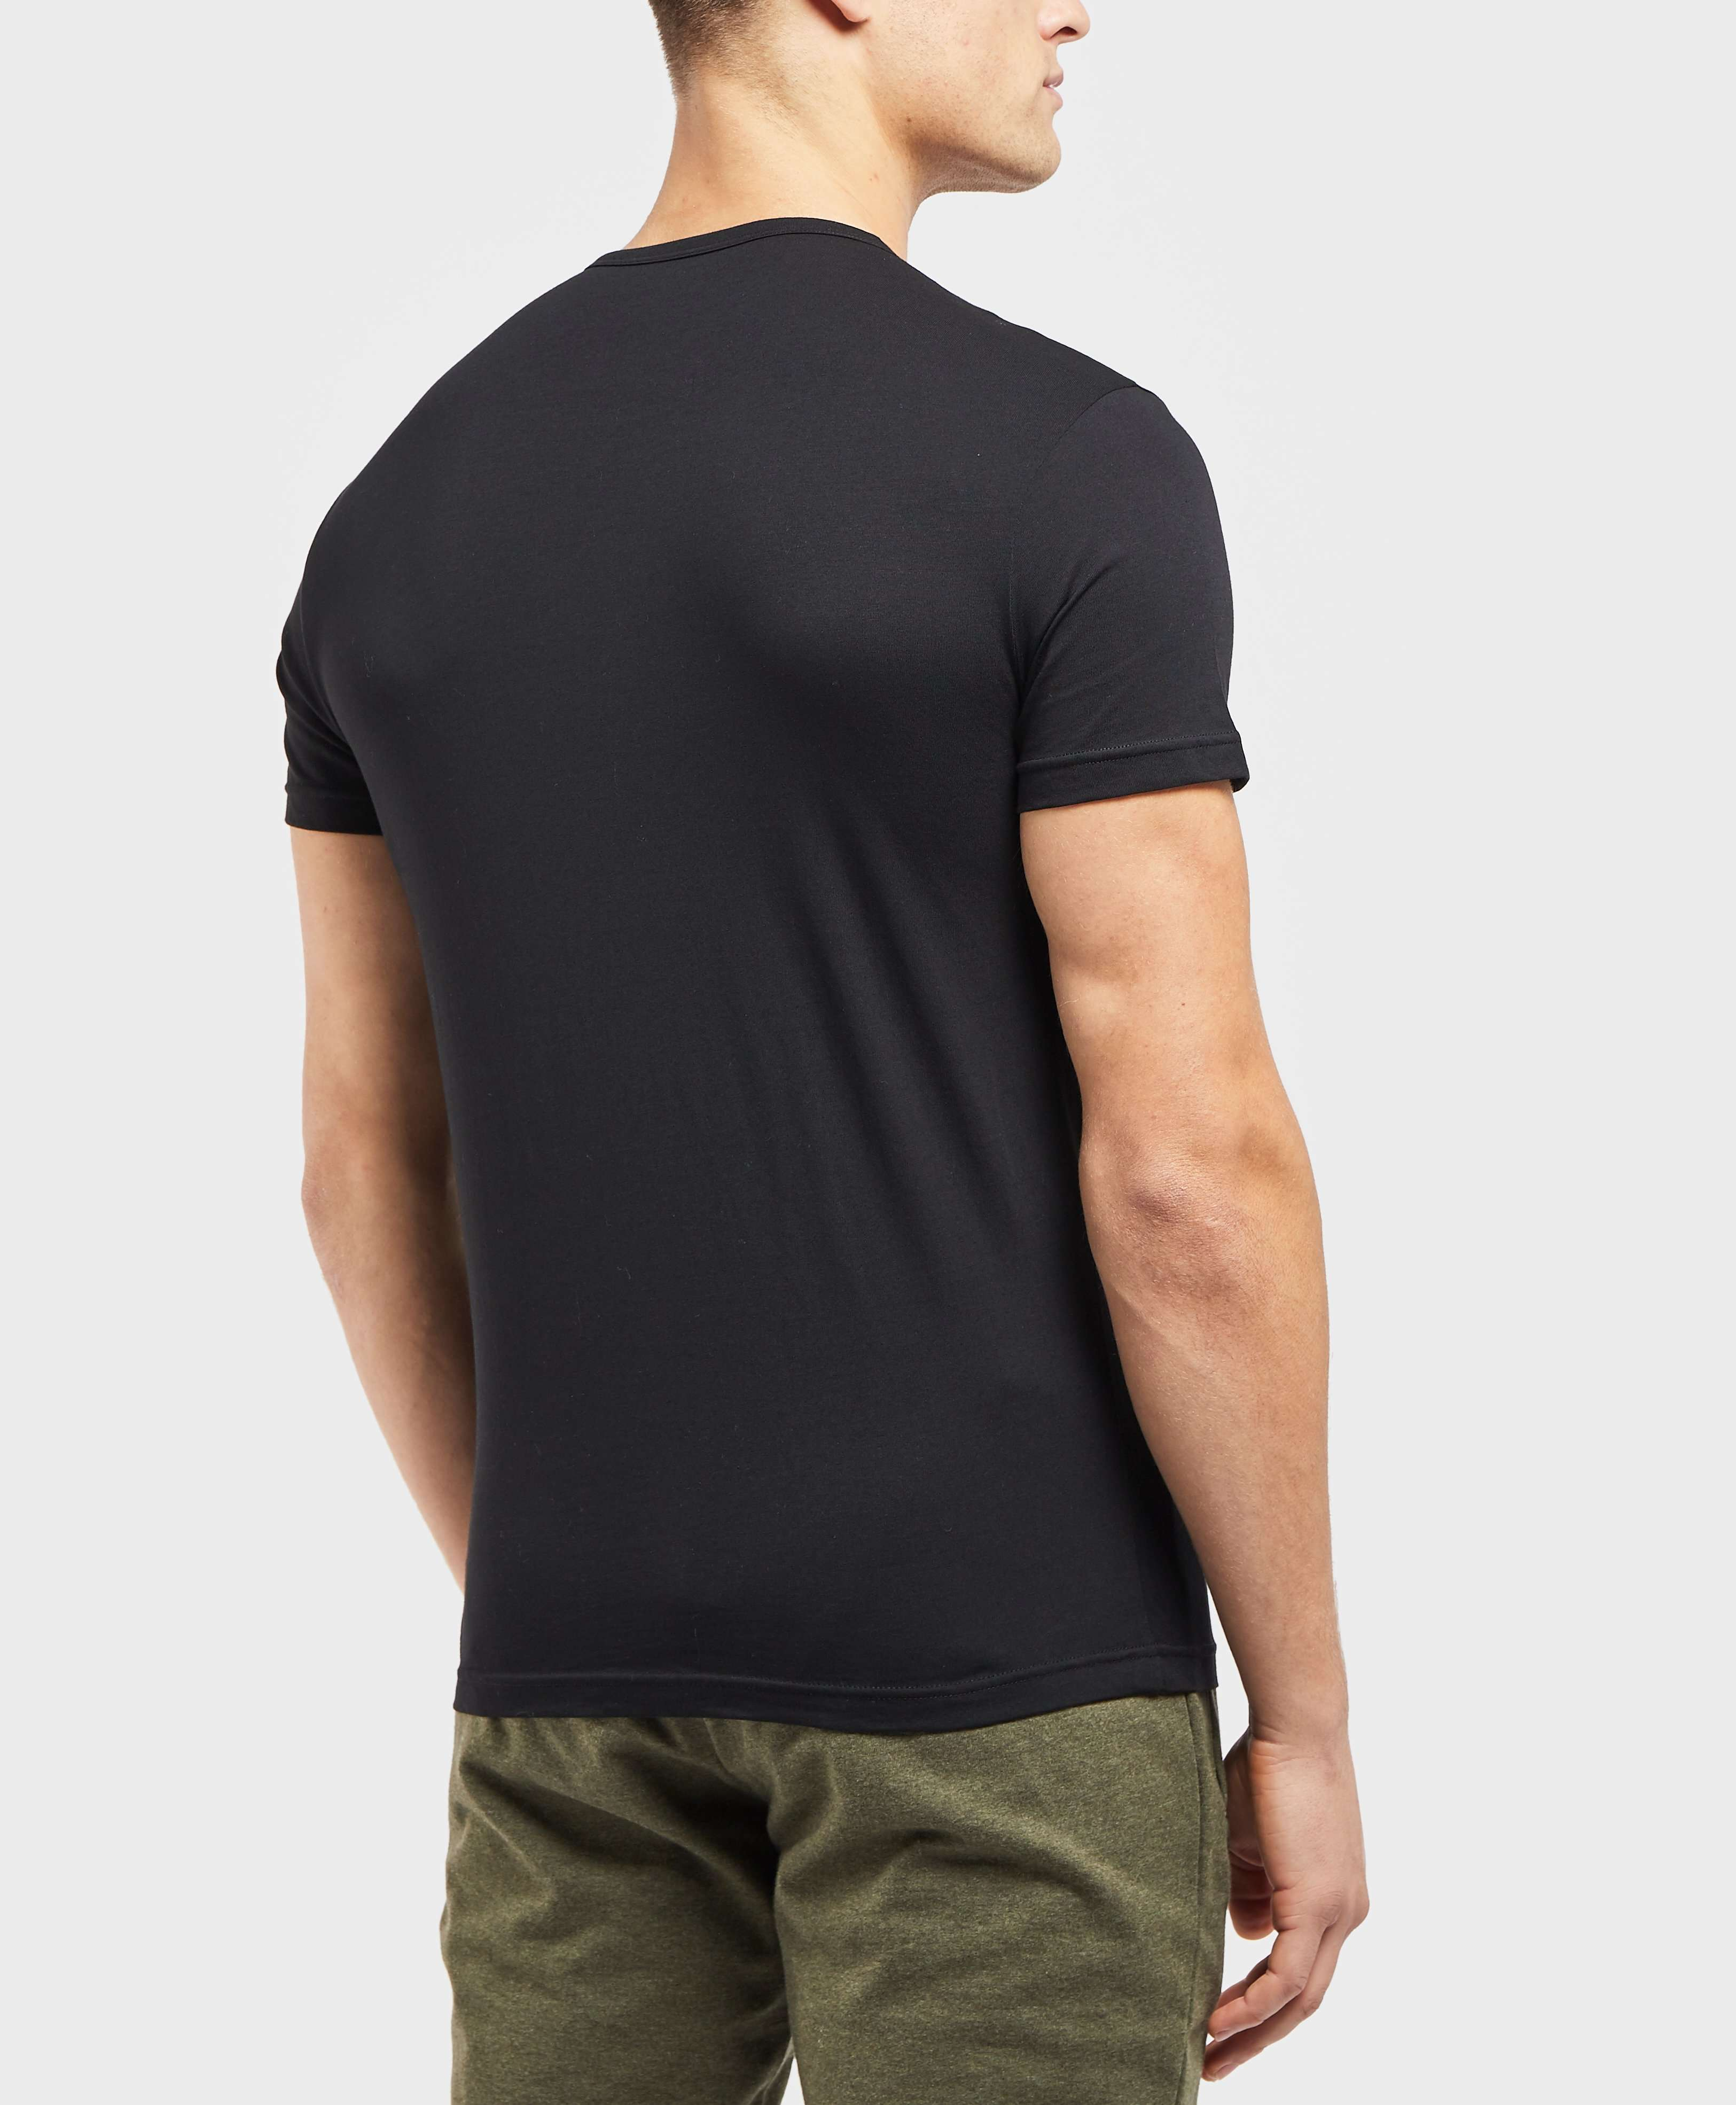 Emporio Armani 2 Pack Short Sleeve T-Shirt